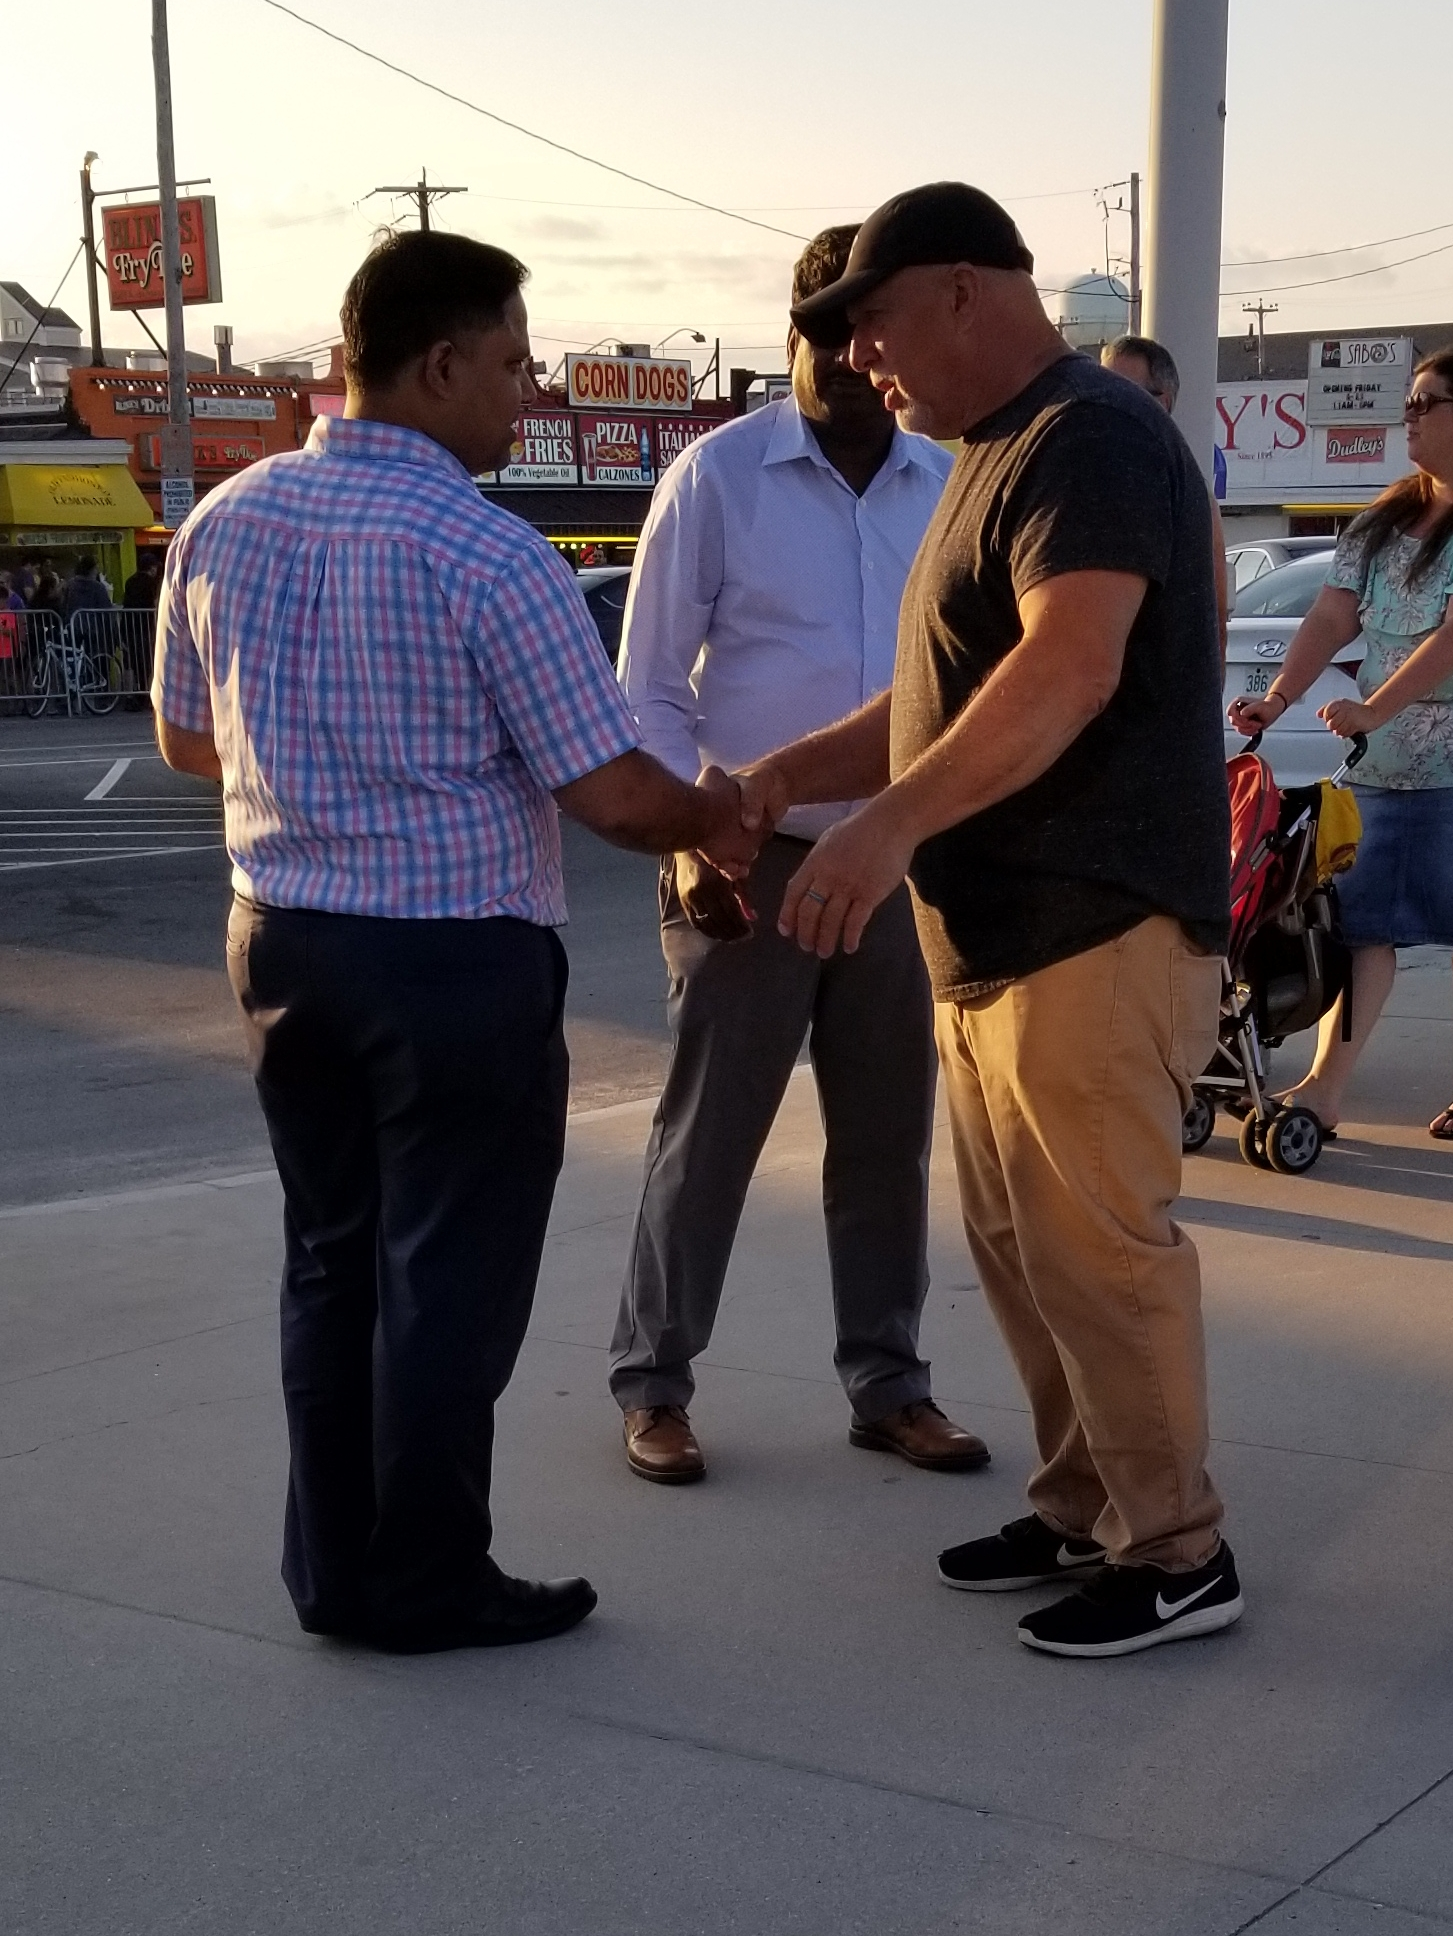 Mike is one of our volunteers. He's SOOO friendly. He loves talking to people about Jesus and his love and concern for them shows very clearly. He's often praying for people and shaking hands and exhorting them to turn to Christ. :)